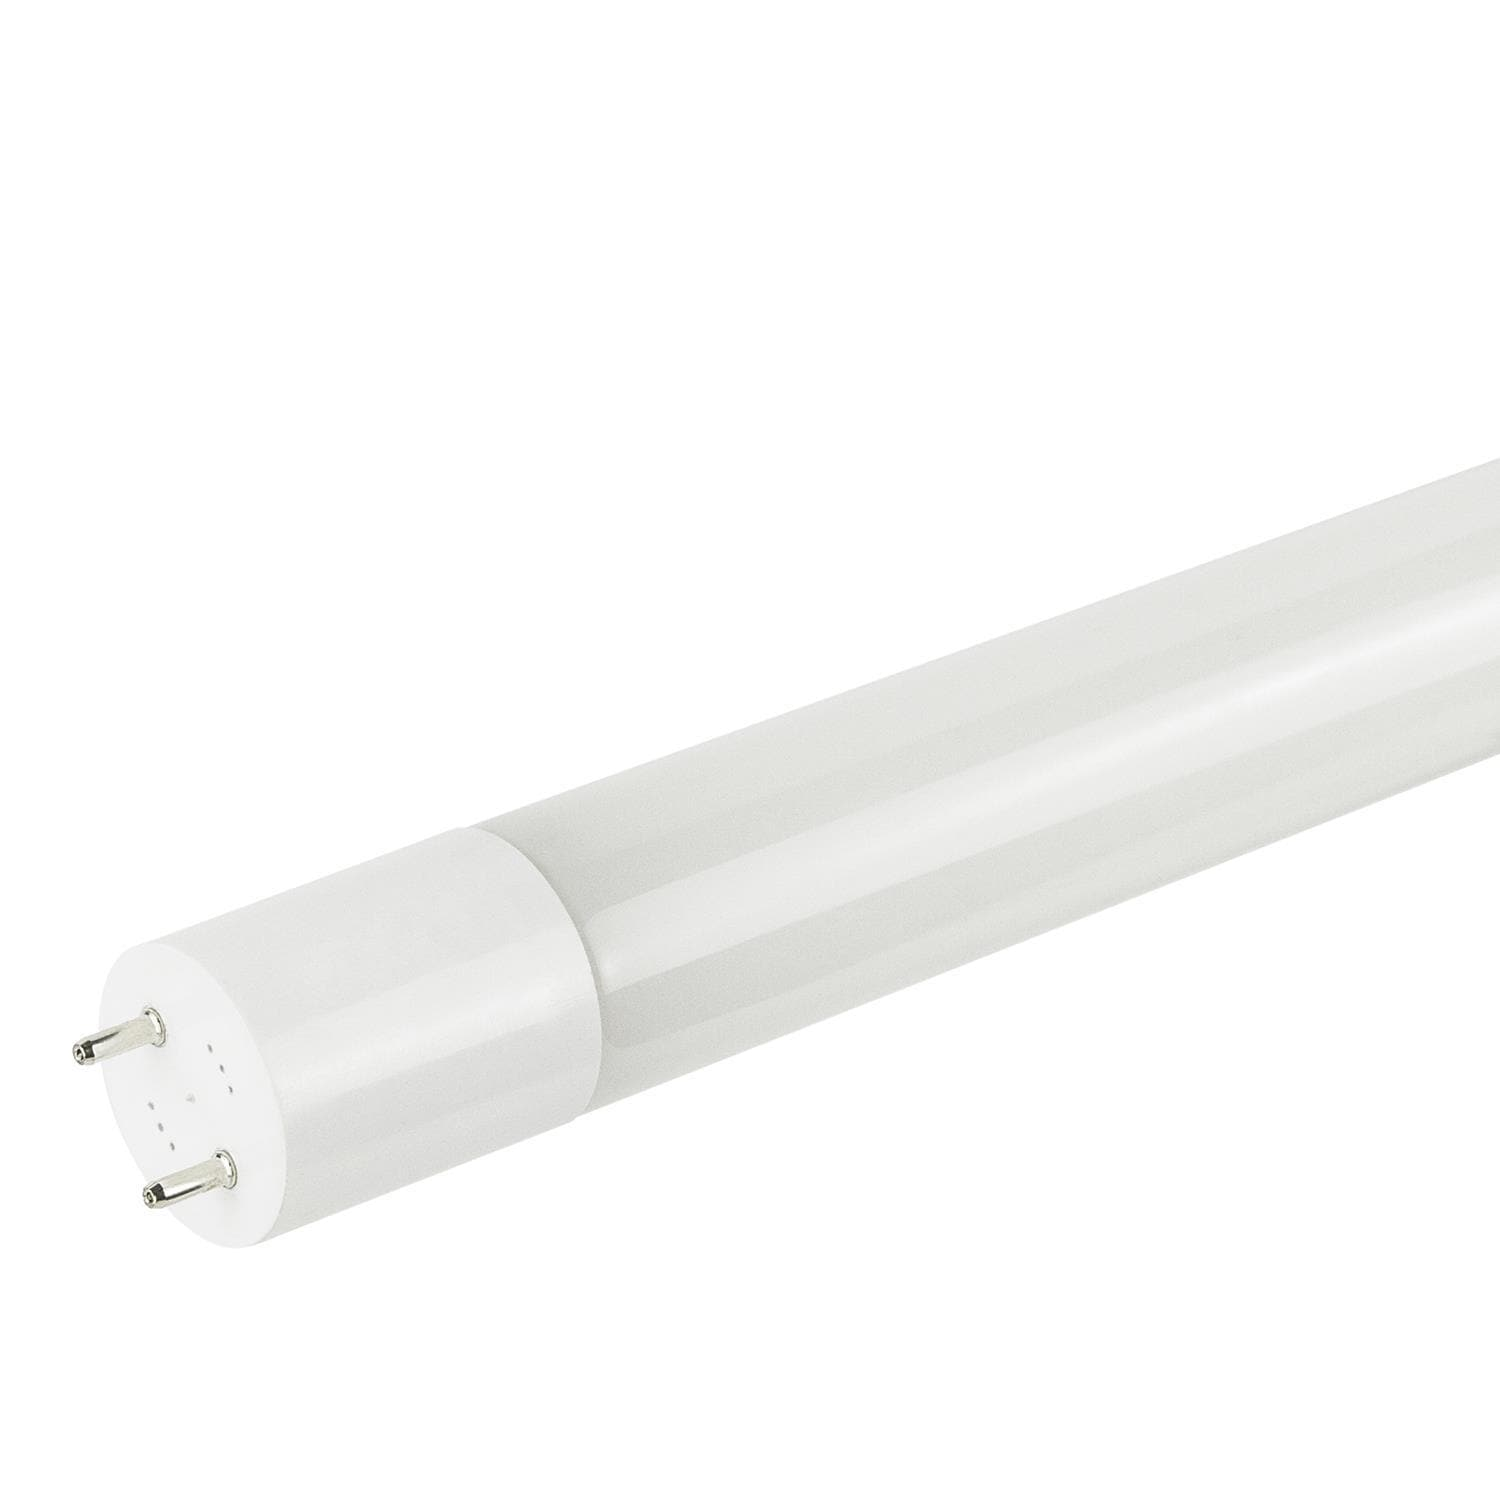 SUNLITE 11.5w T8 LED Tube 4000K Cool White G13 Base